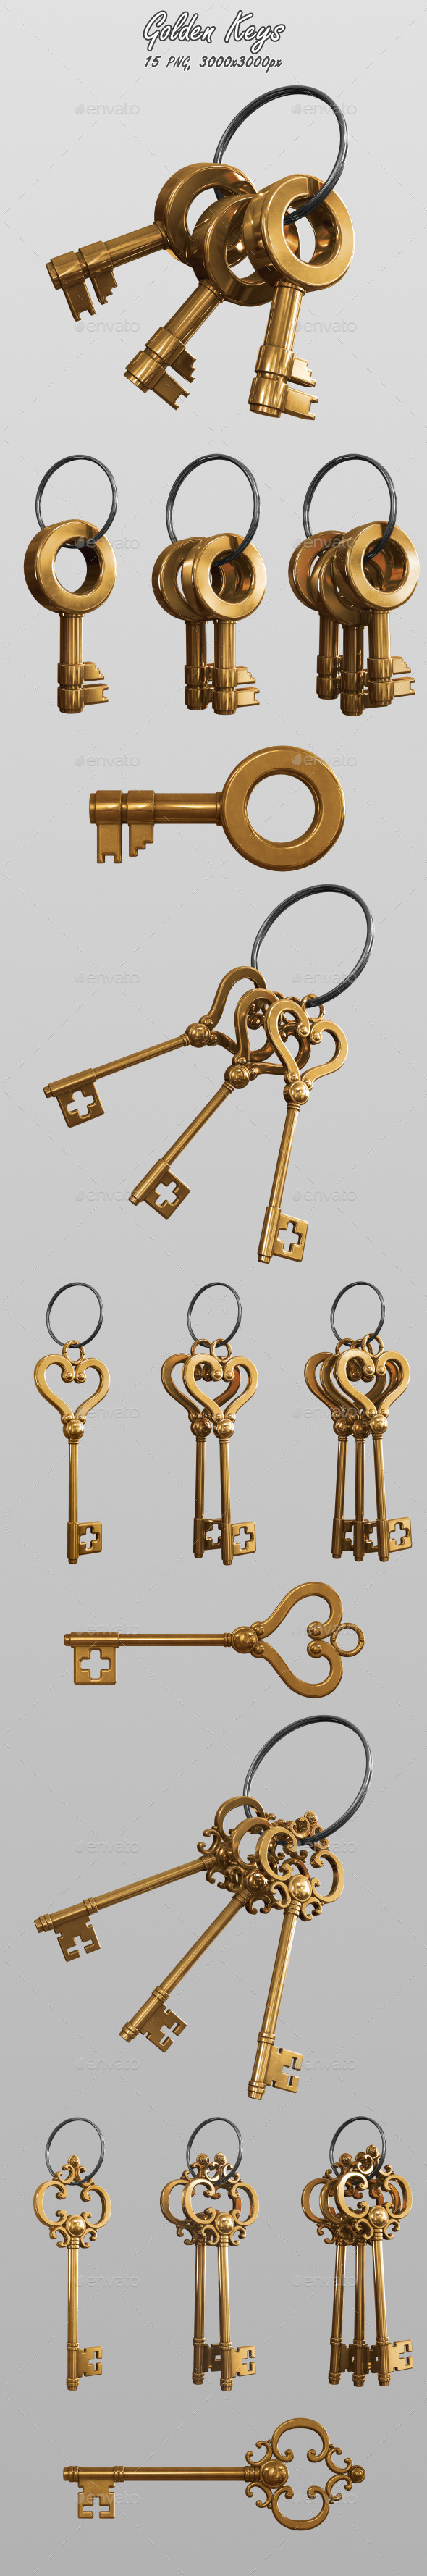 GraphicRiver Golden Keys 10870339